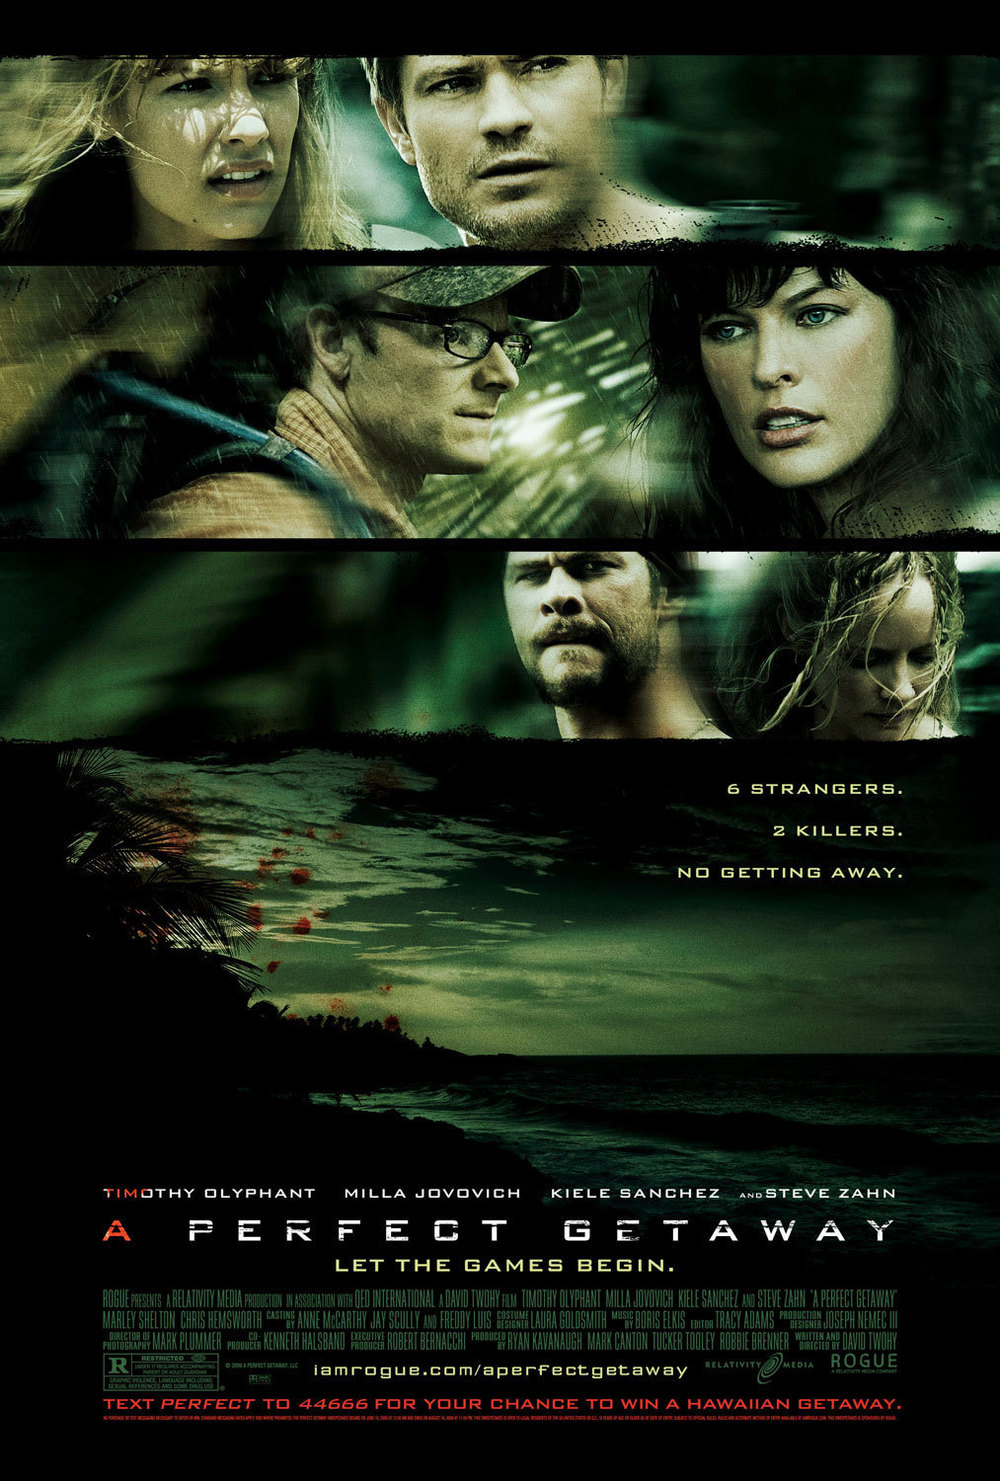 A-Perfect-Getaway-Poster-horror-movies-6875462-1013-1500.jpg